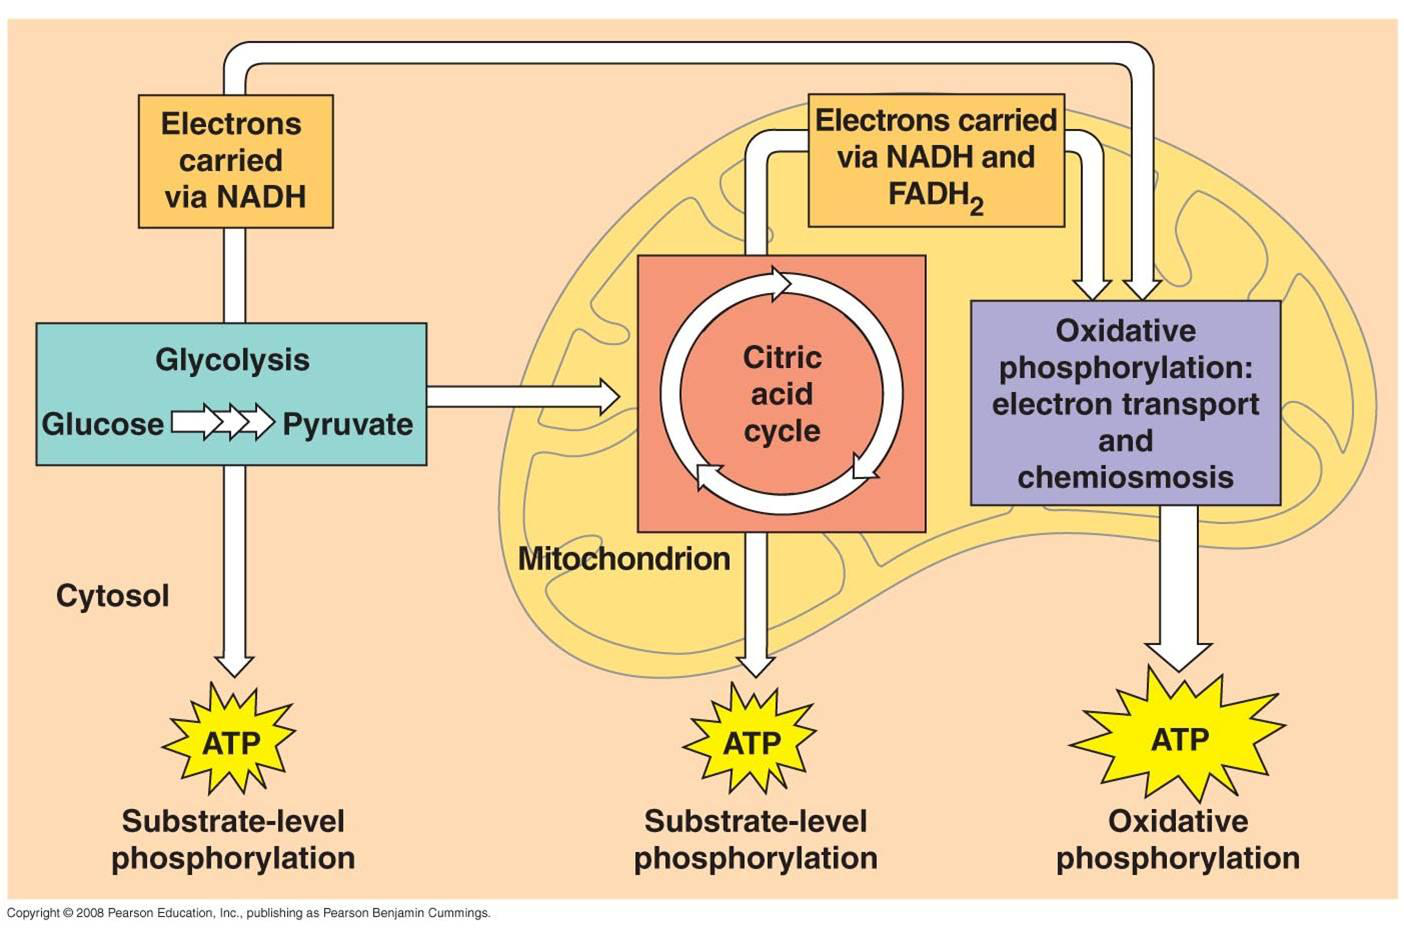 Aerobic respiration cycle diagram output complete wiring diagrams biochemical reactions lesson 0789 tqa explorer rh data allenai org photosynthesis and respiration diagram aerobic respiration ccuart Image collections